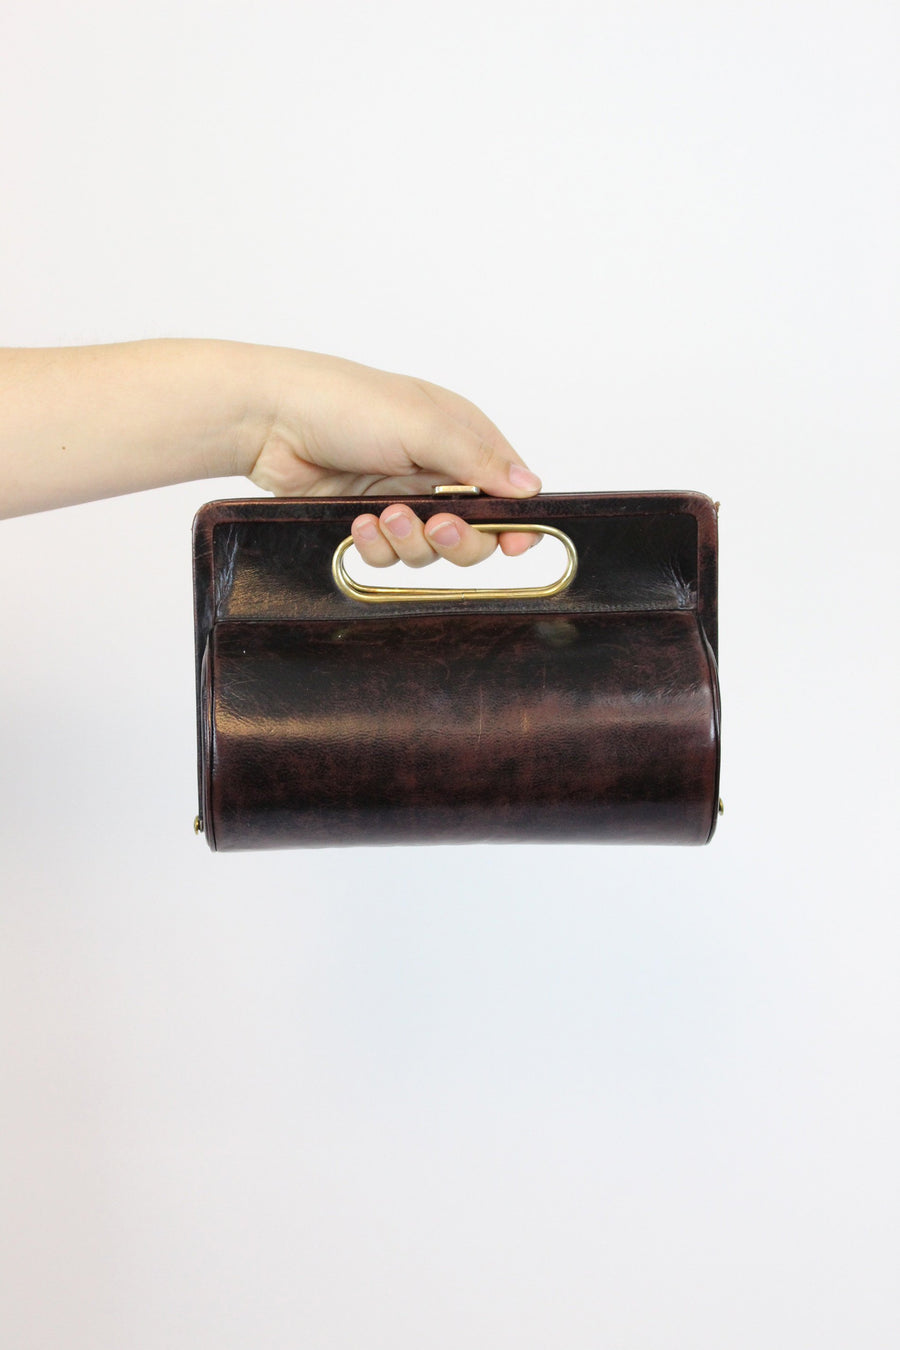 1950s cylindrical purse | geometric novelty handbag | faux leather clutch